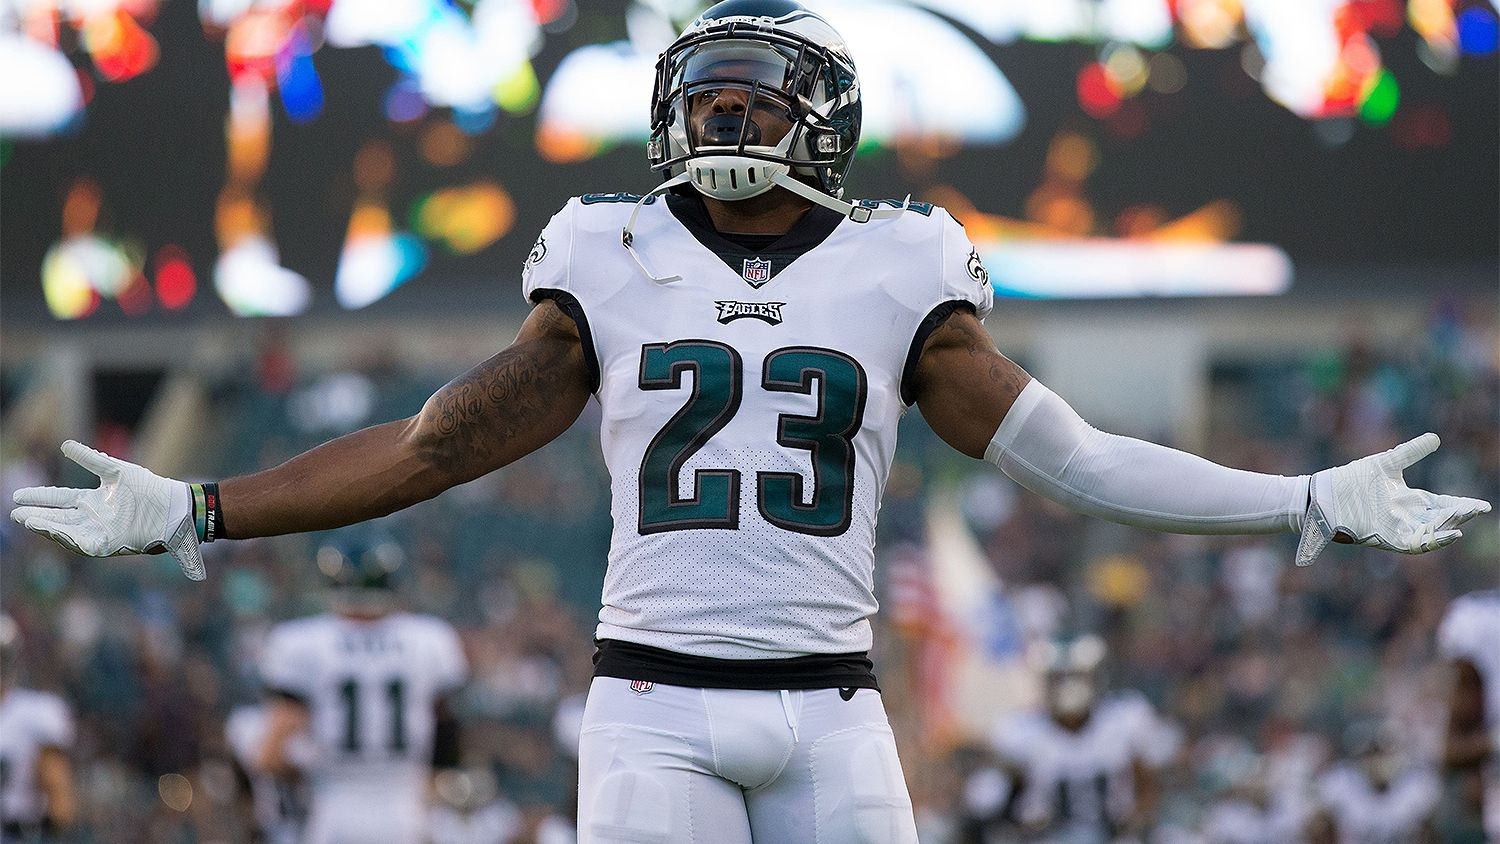 2020 Nfl Free Agency Top 10 Free Agent Safeties National Football League News In 2020 Free Agent National Football League National Football